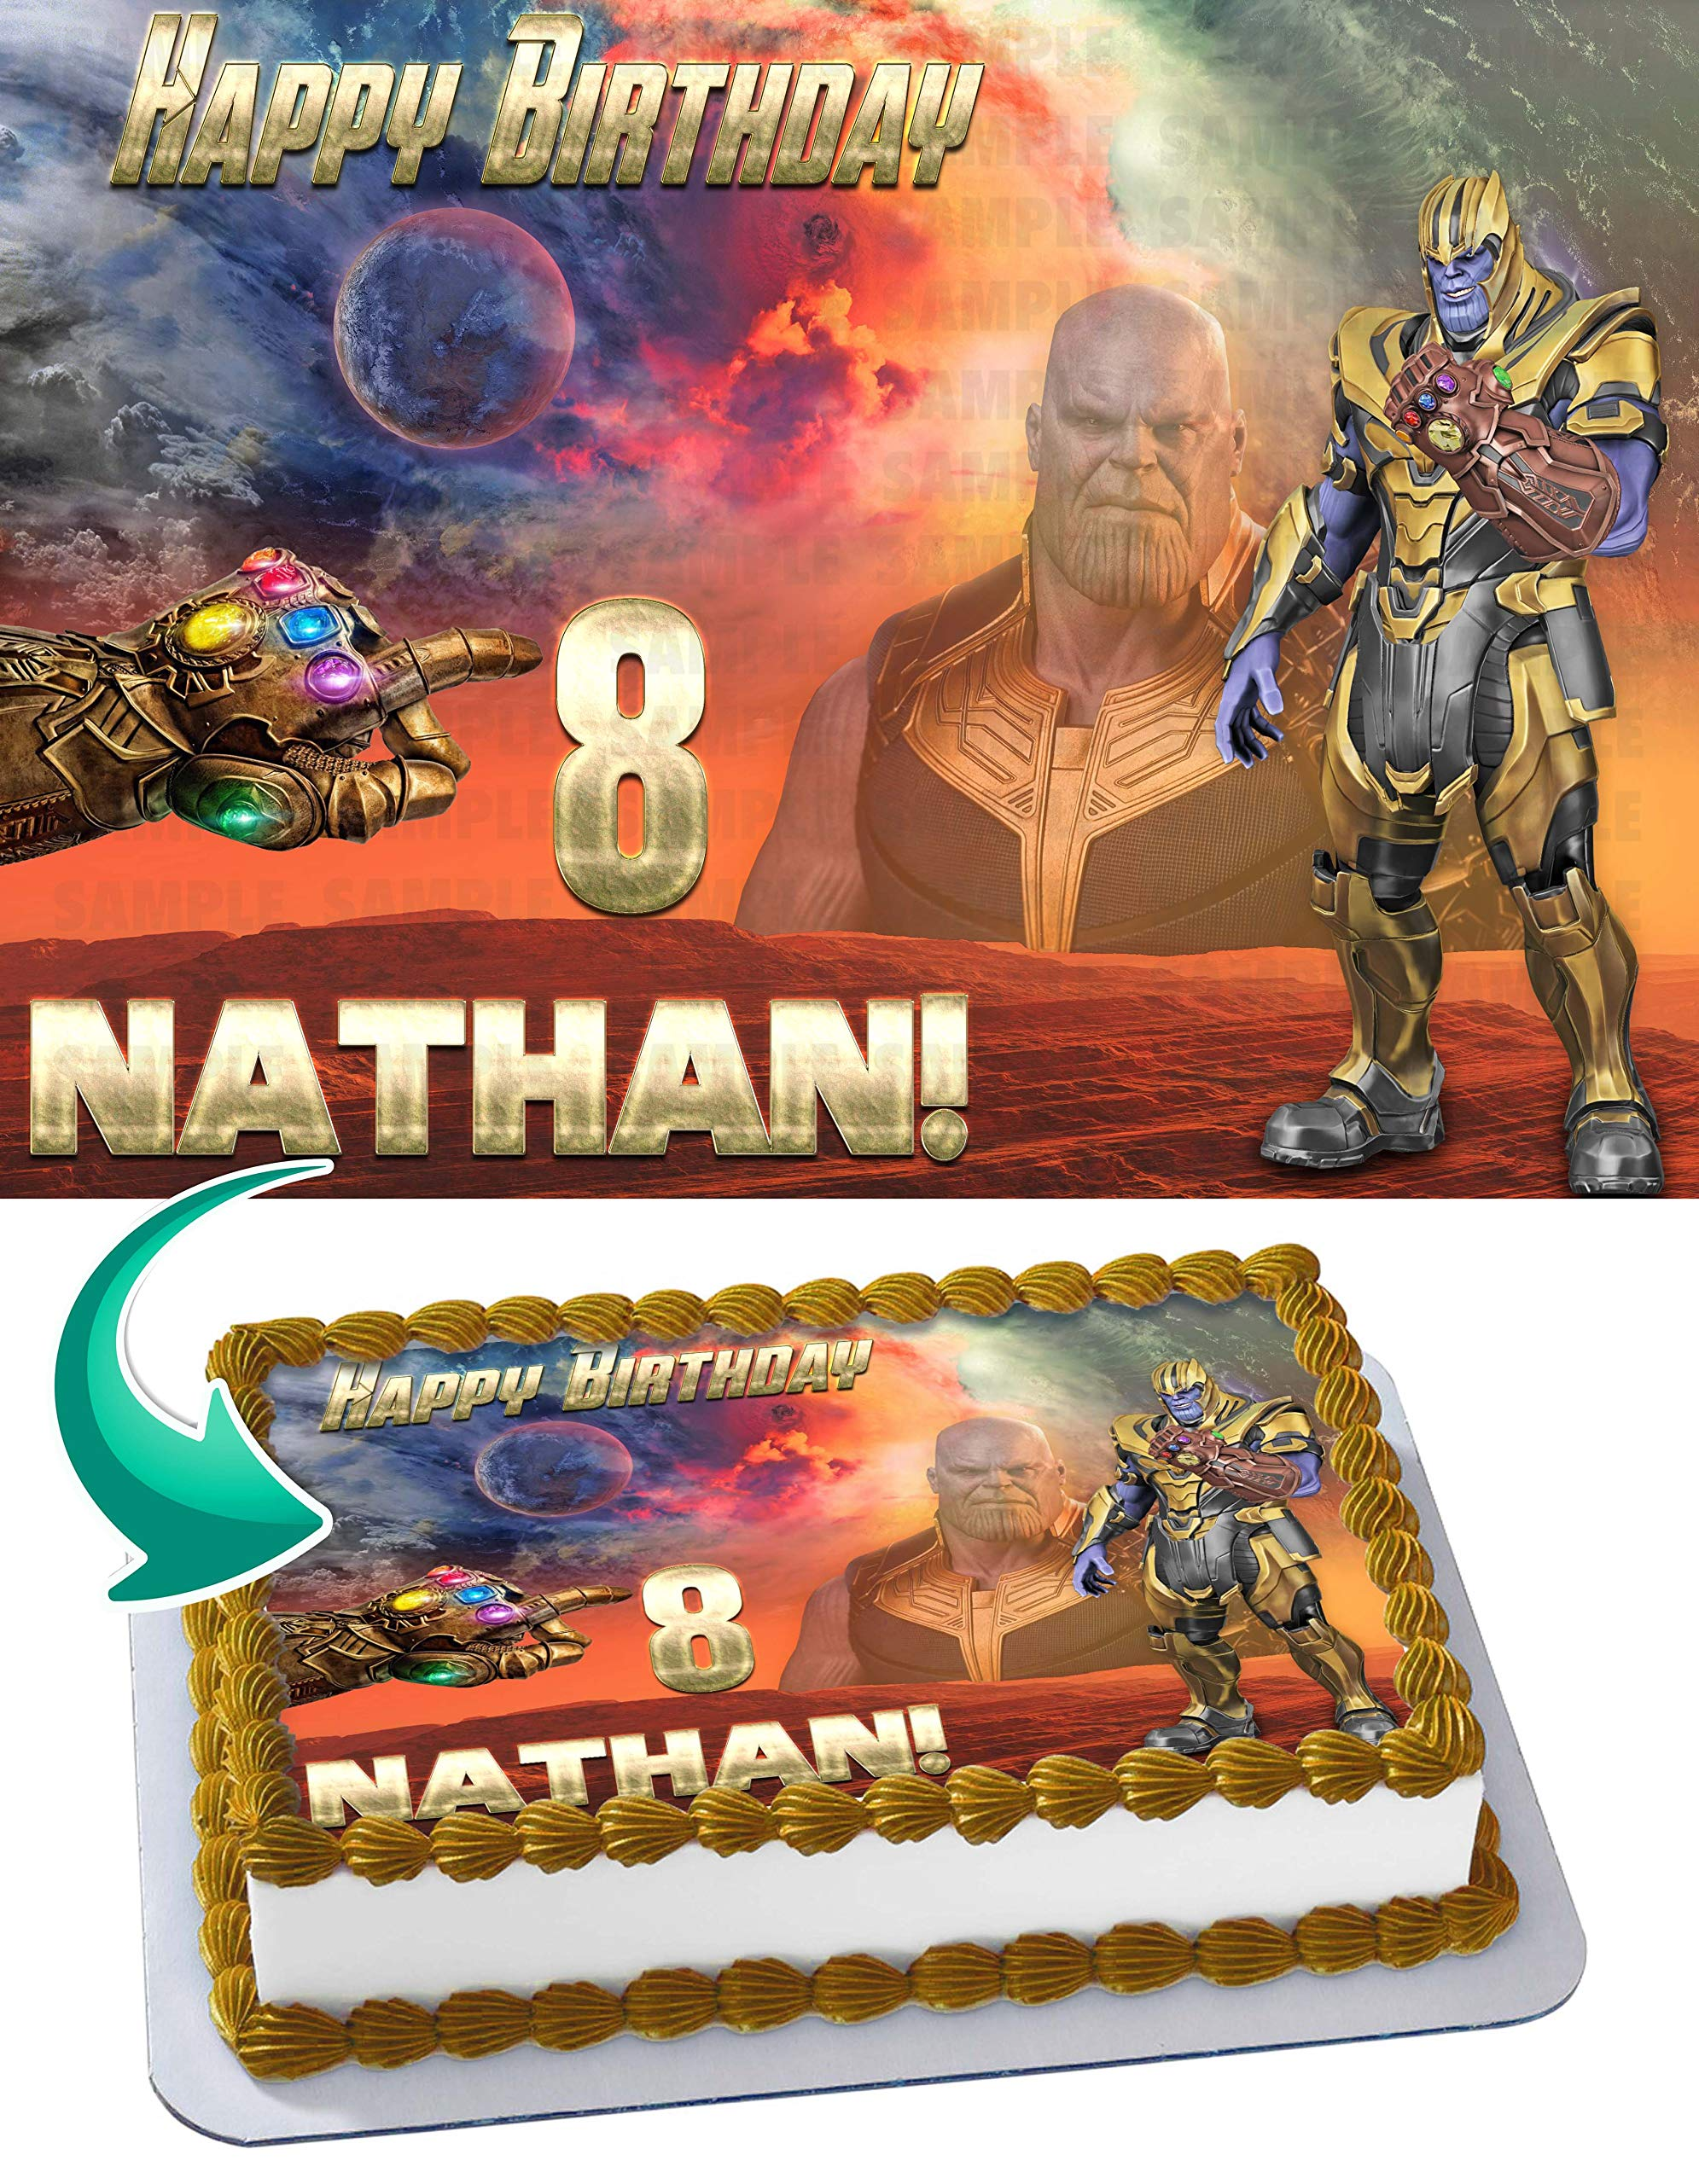 Thanos Avengers Infinity Edible Cake Image Topper Personalized Birthday 1/4 Sheet Custom Sheet Party Birthday Sugar Frosting Transfer Fondant Image ~ Best Quality Edible Image for Cake